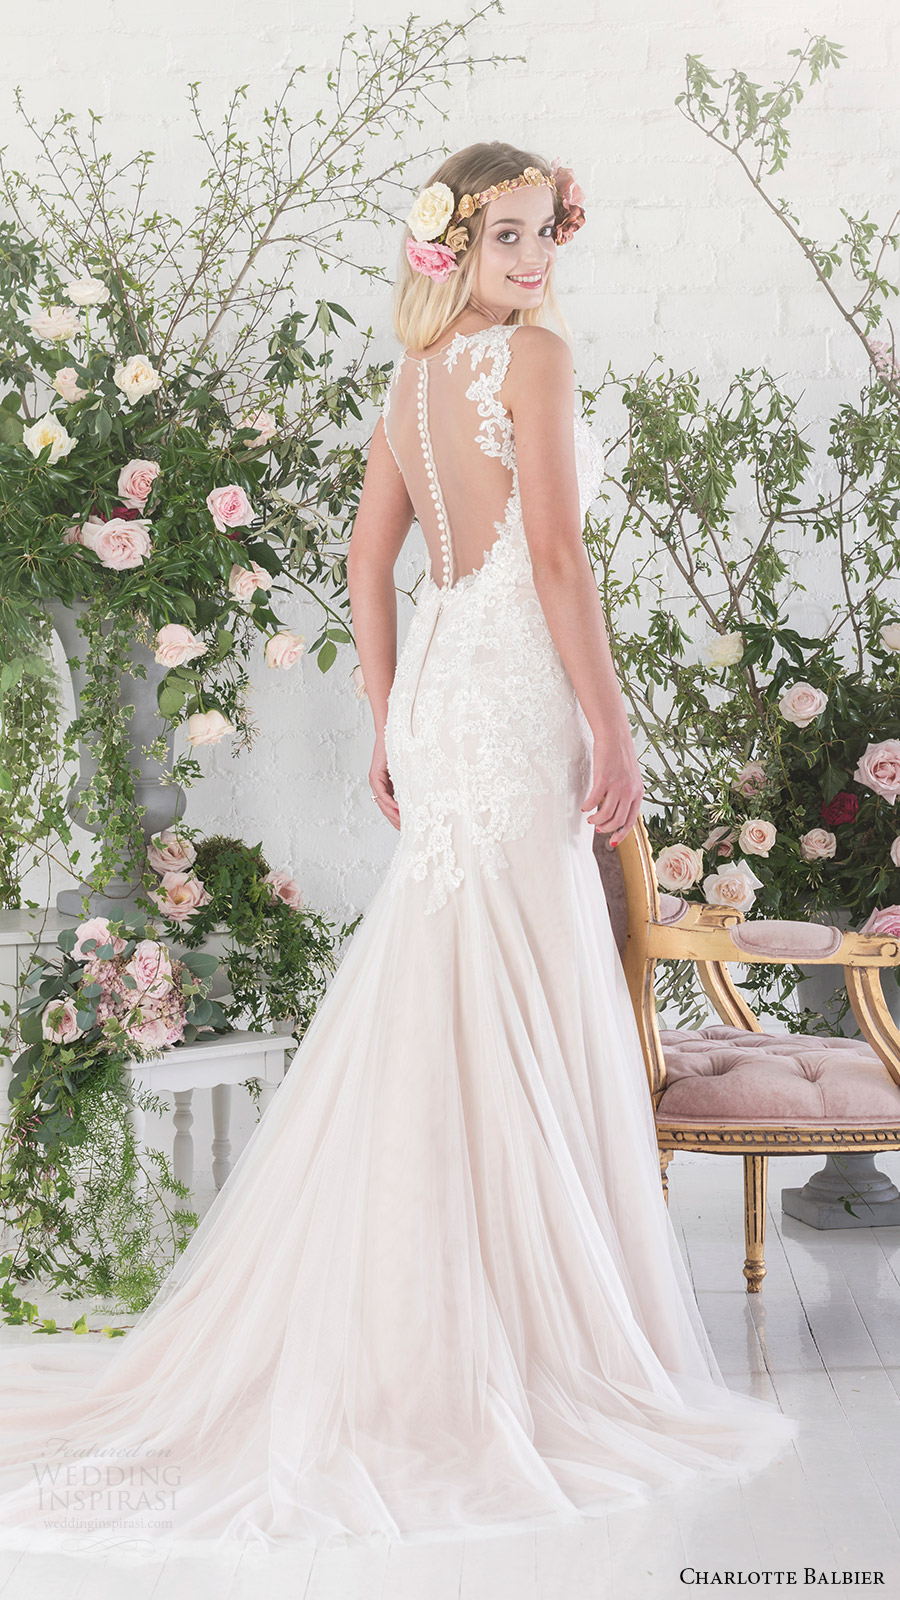 Wedding dresses in charlotte wedding dresses asian for Wedding dresses charlotte nc